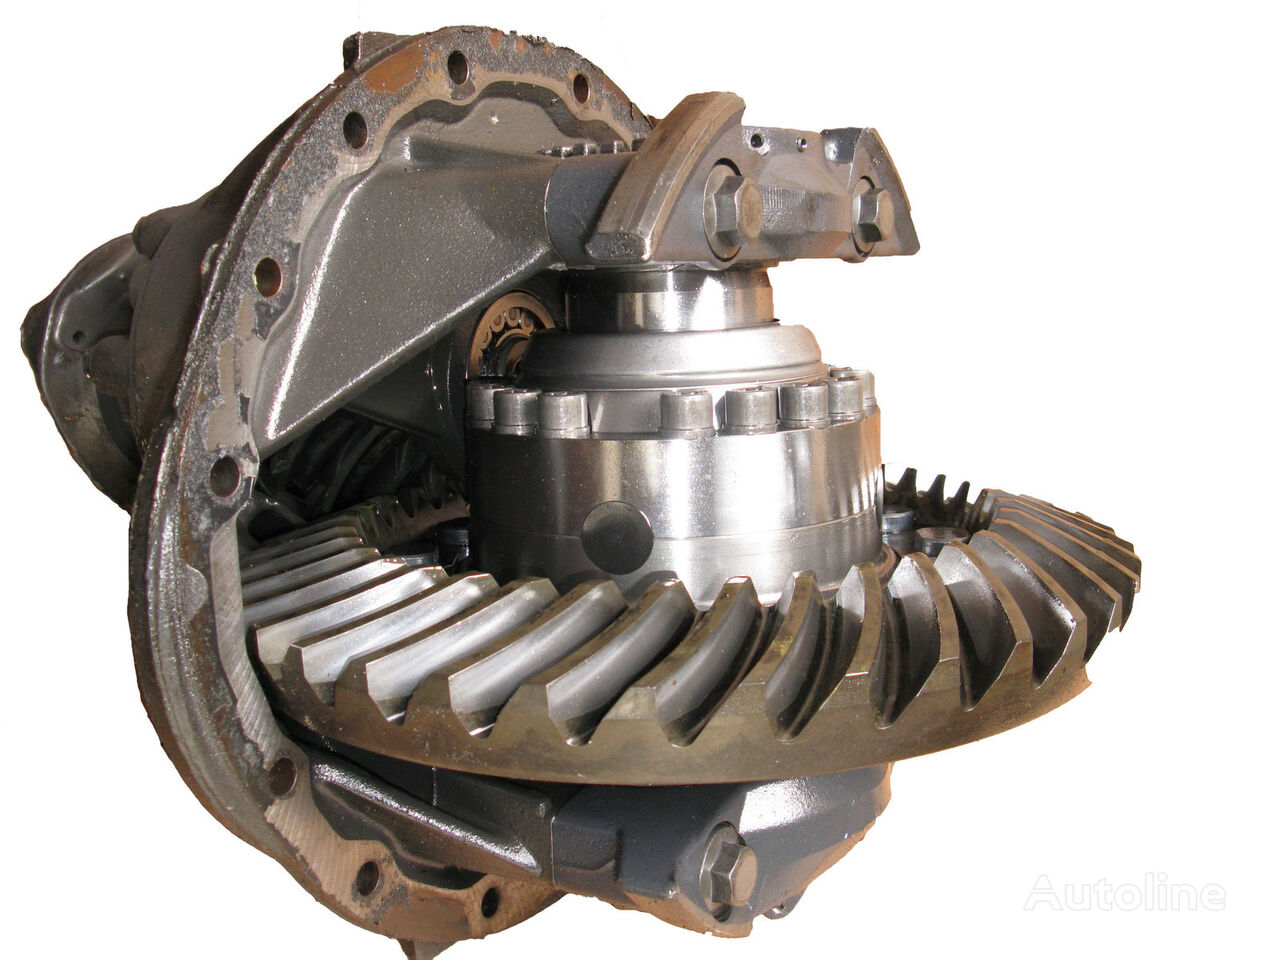 SCANIA R780 RATIO 2.59 : 2,72 : 2,91 : 3,08 : 3,27 : 3,40 differential for SCANIA R780 (2,71) tractor unit